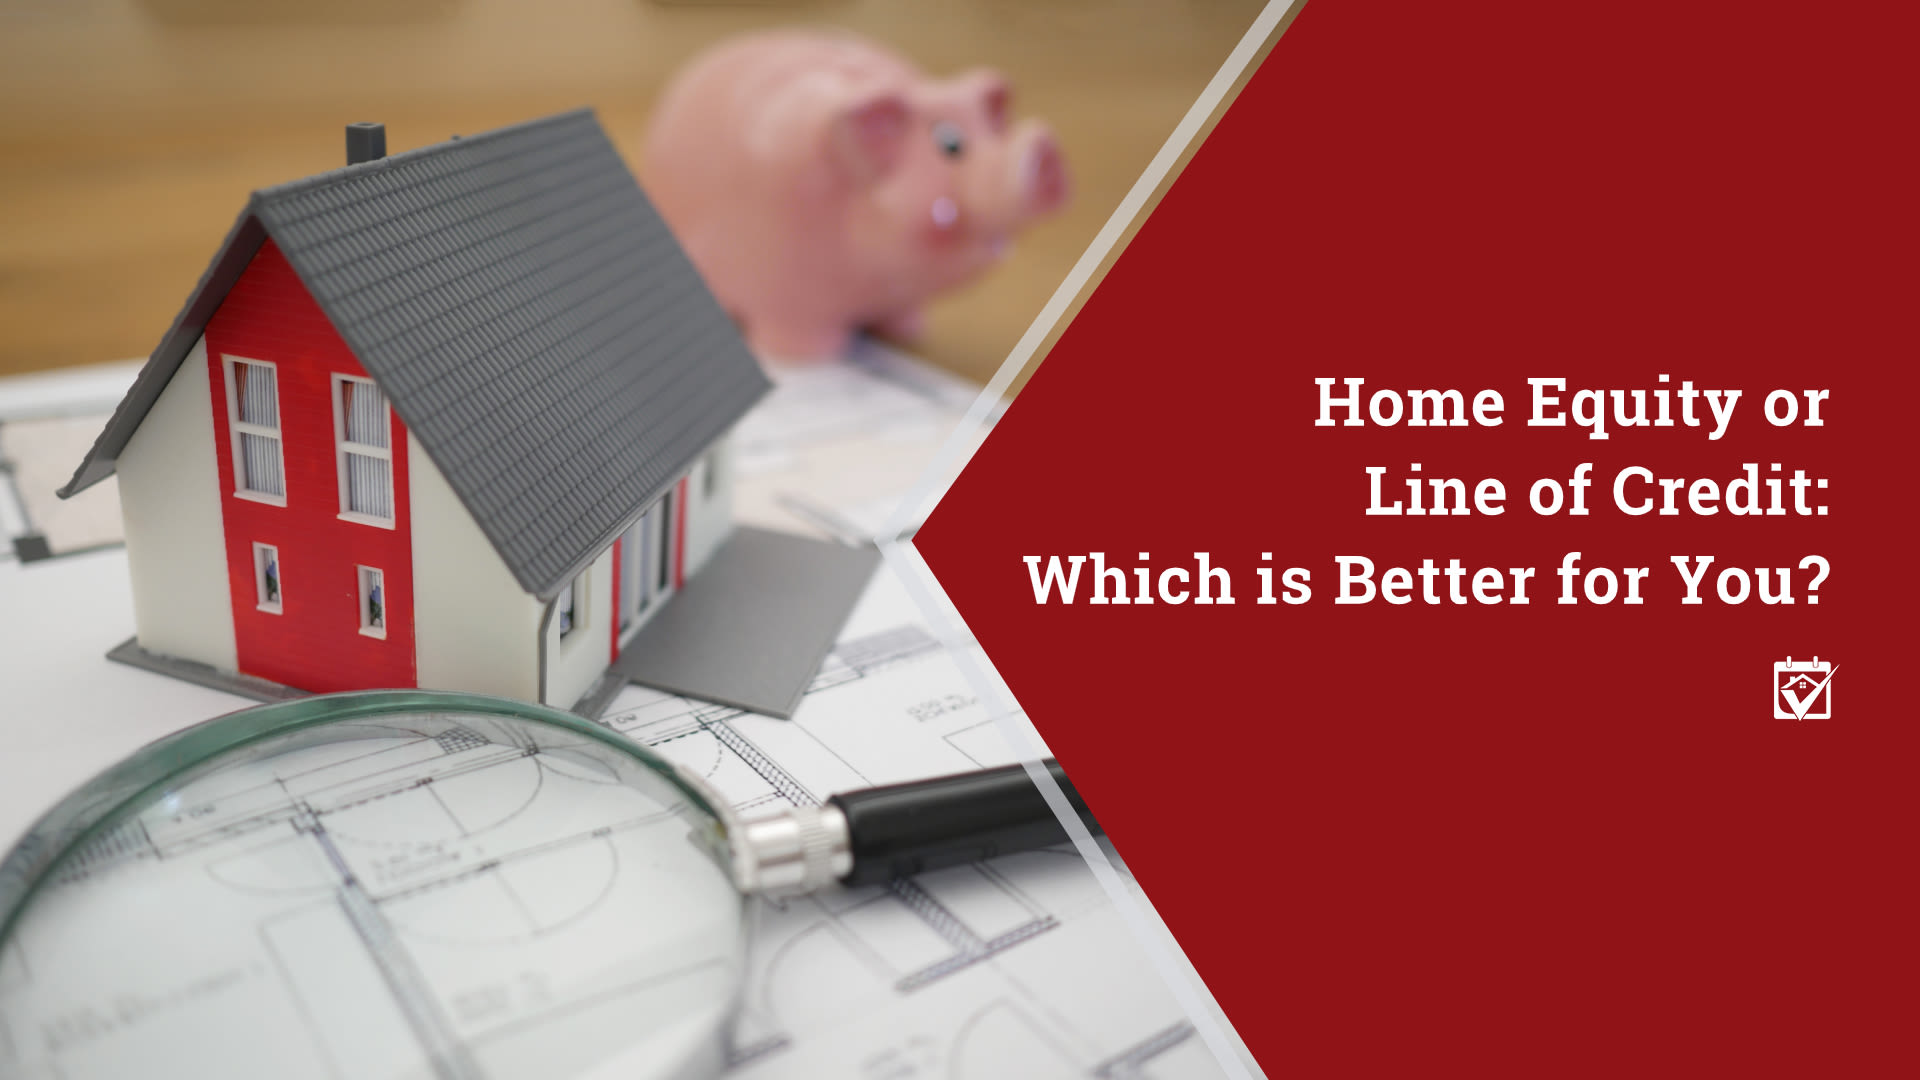 Home Equity or Line of Credit